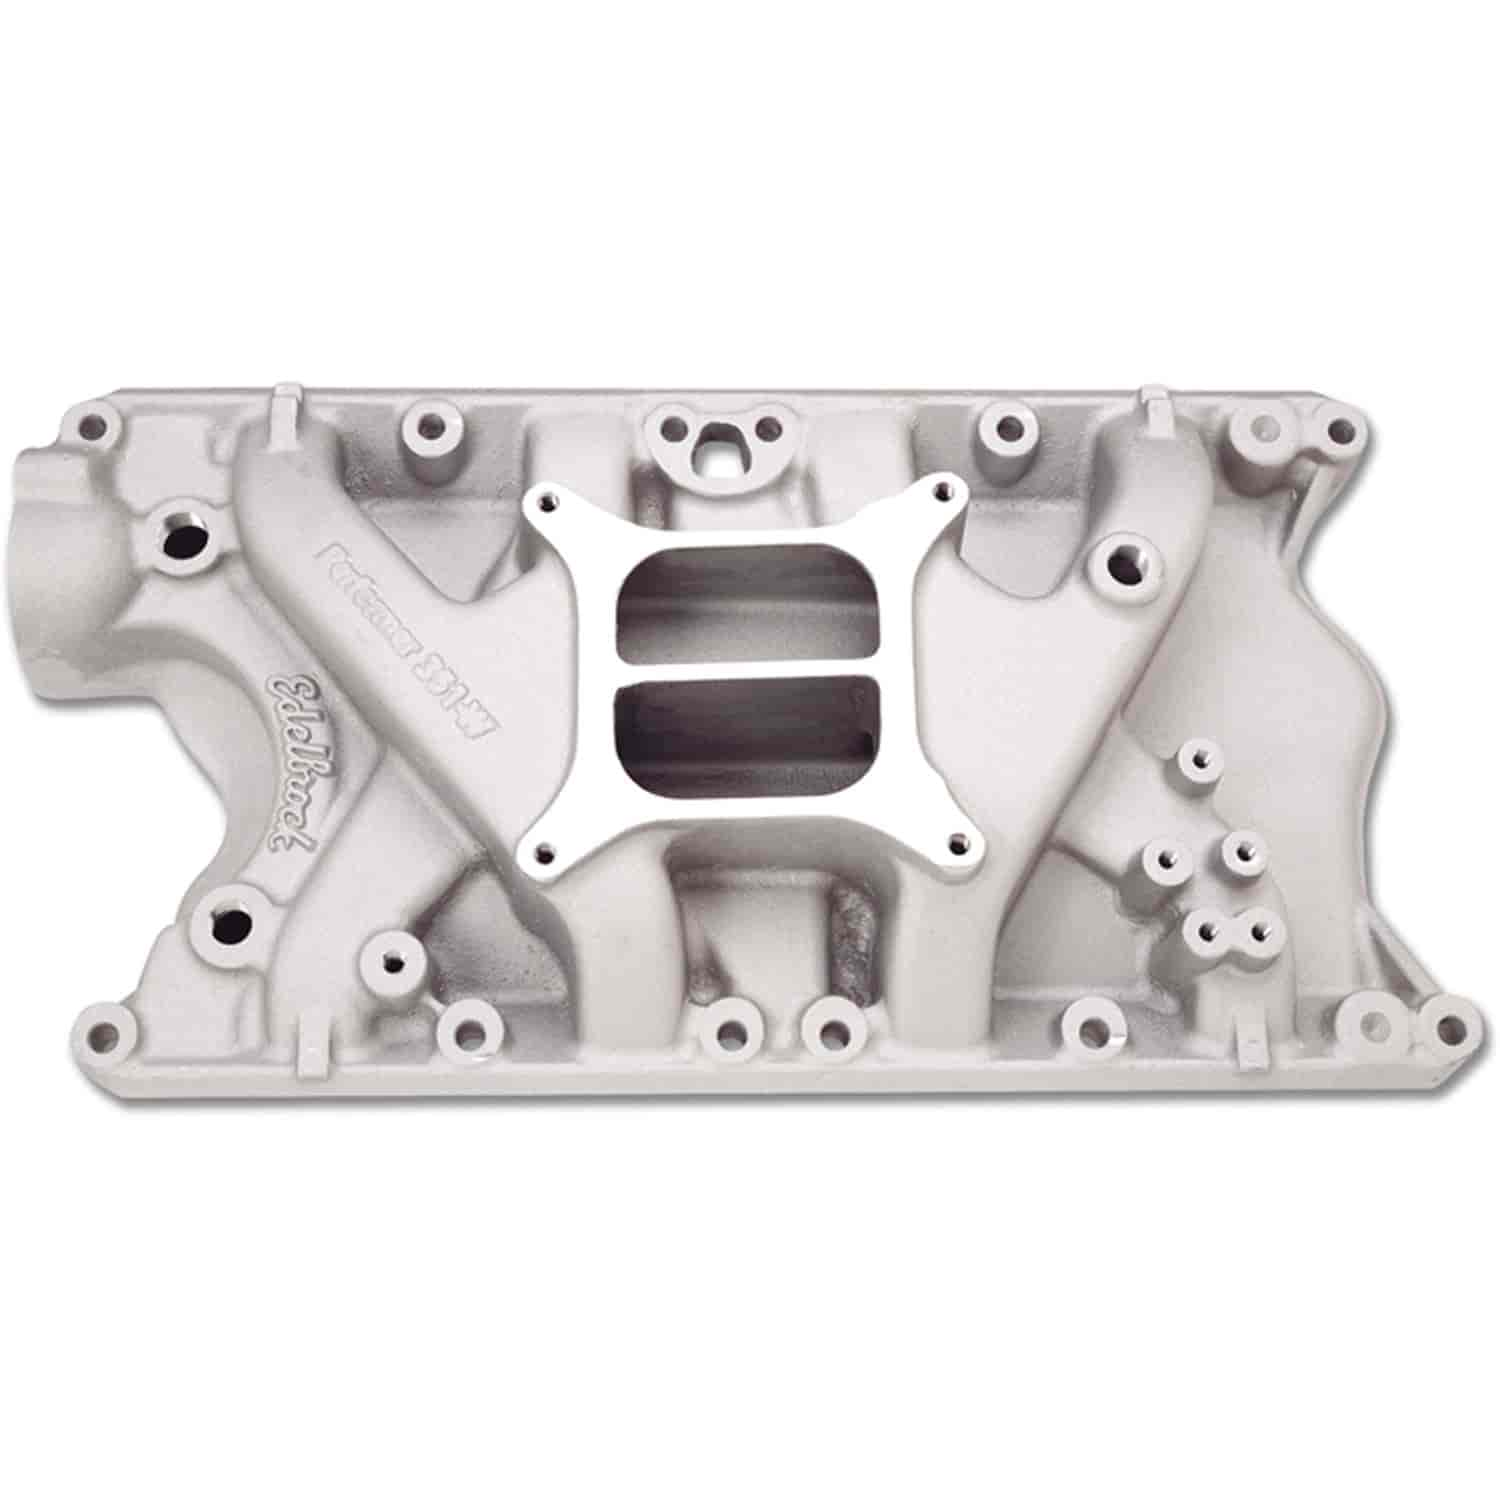 hight resolution of edelbrock performer 351w ford intake manifold